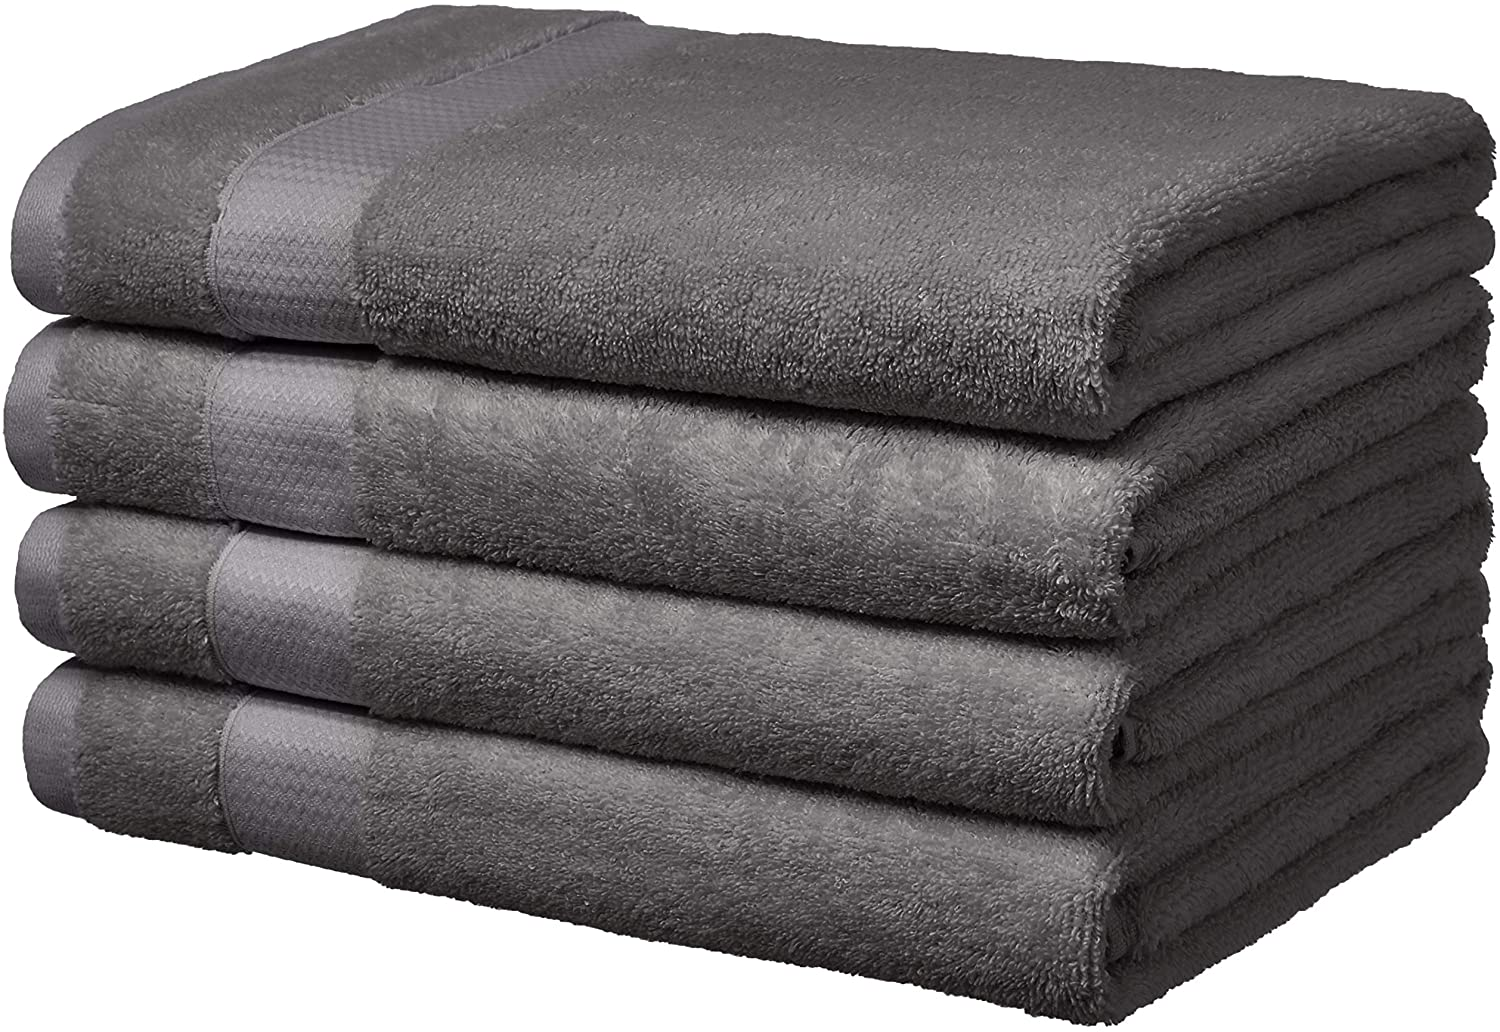 AmazonBasics Everyday Bath Towels, Set of 4, Powder Grey, 100% Soft Cotton, Durable